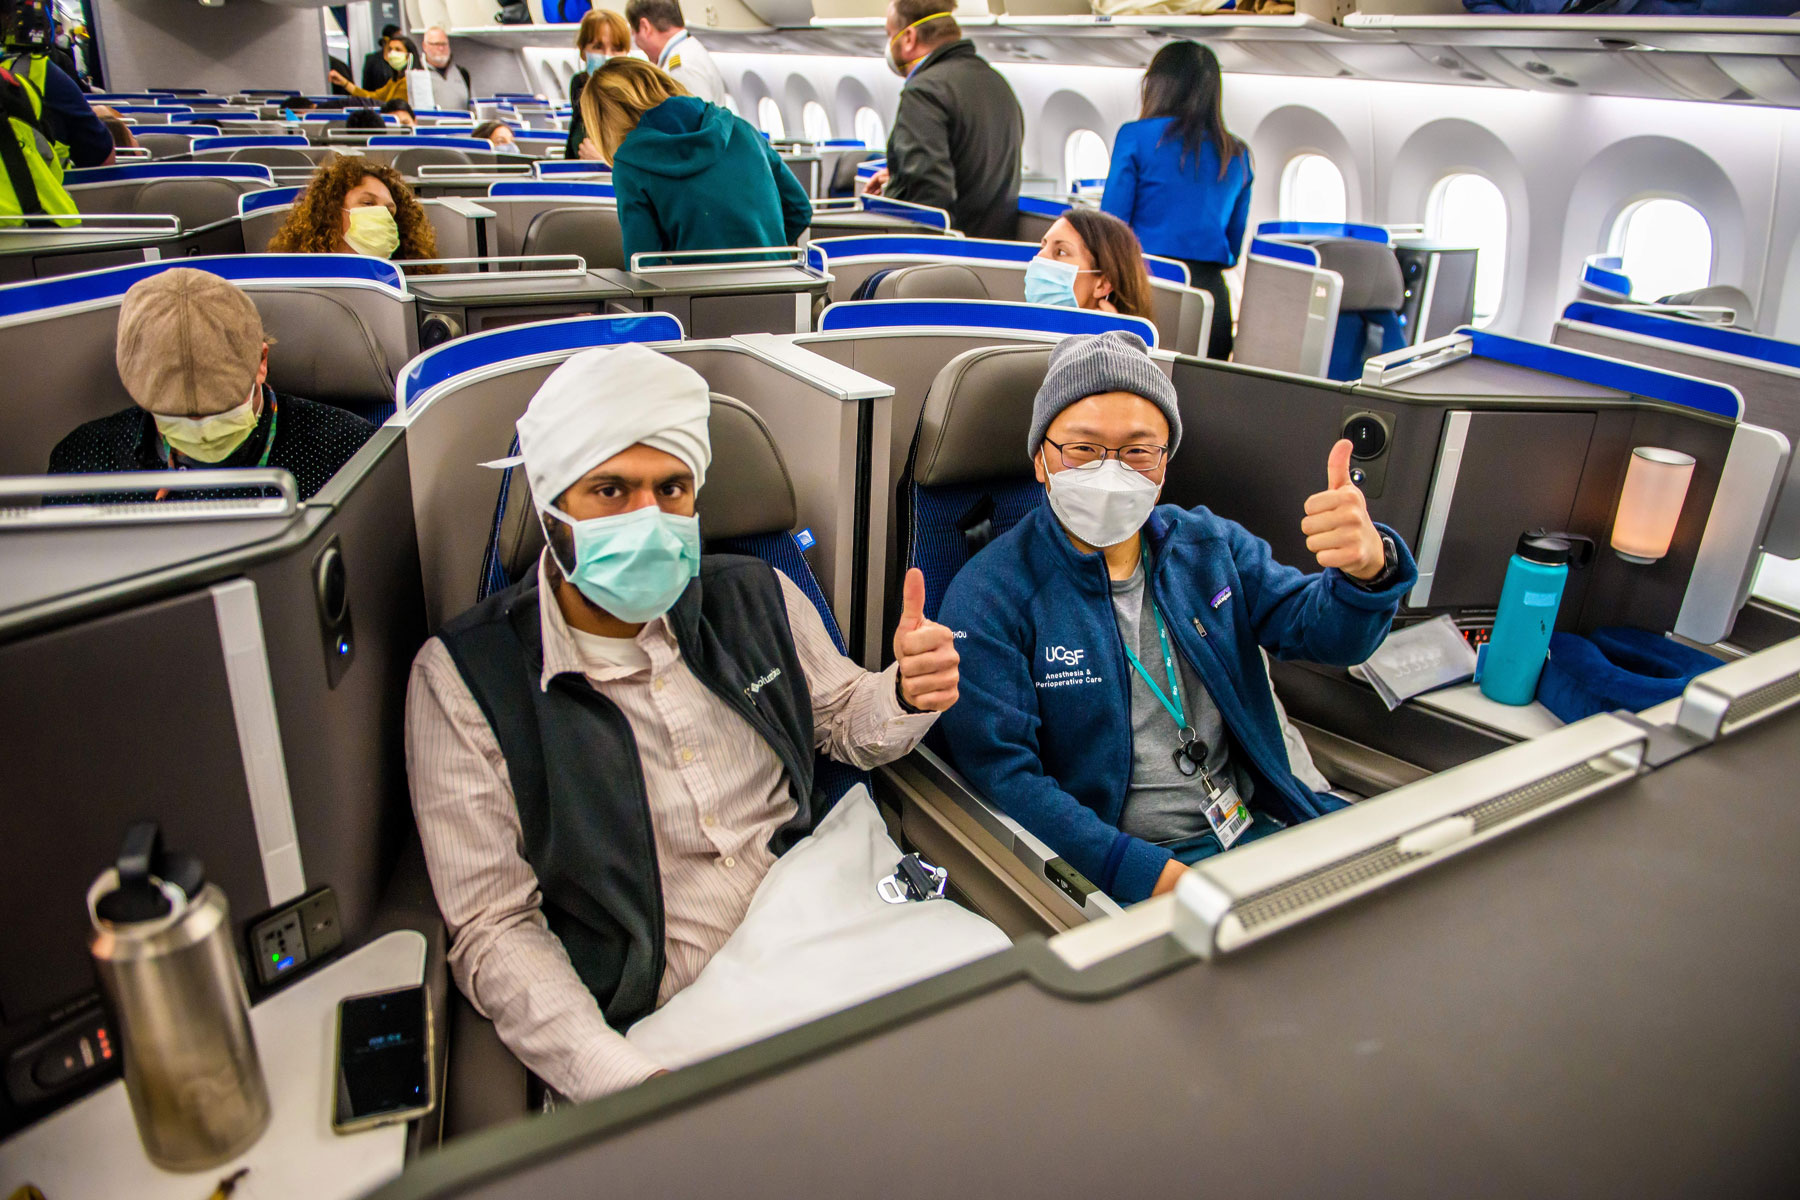 medical workers aboard a United airplane